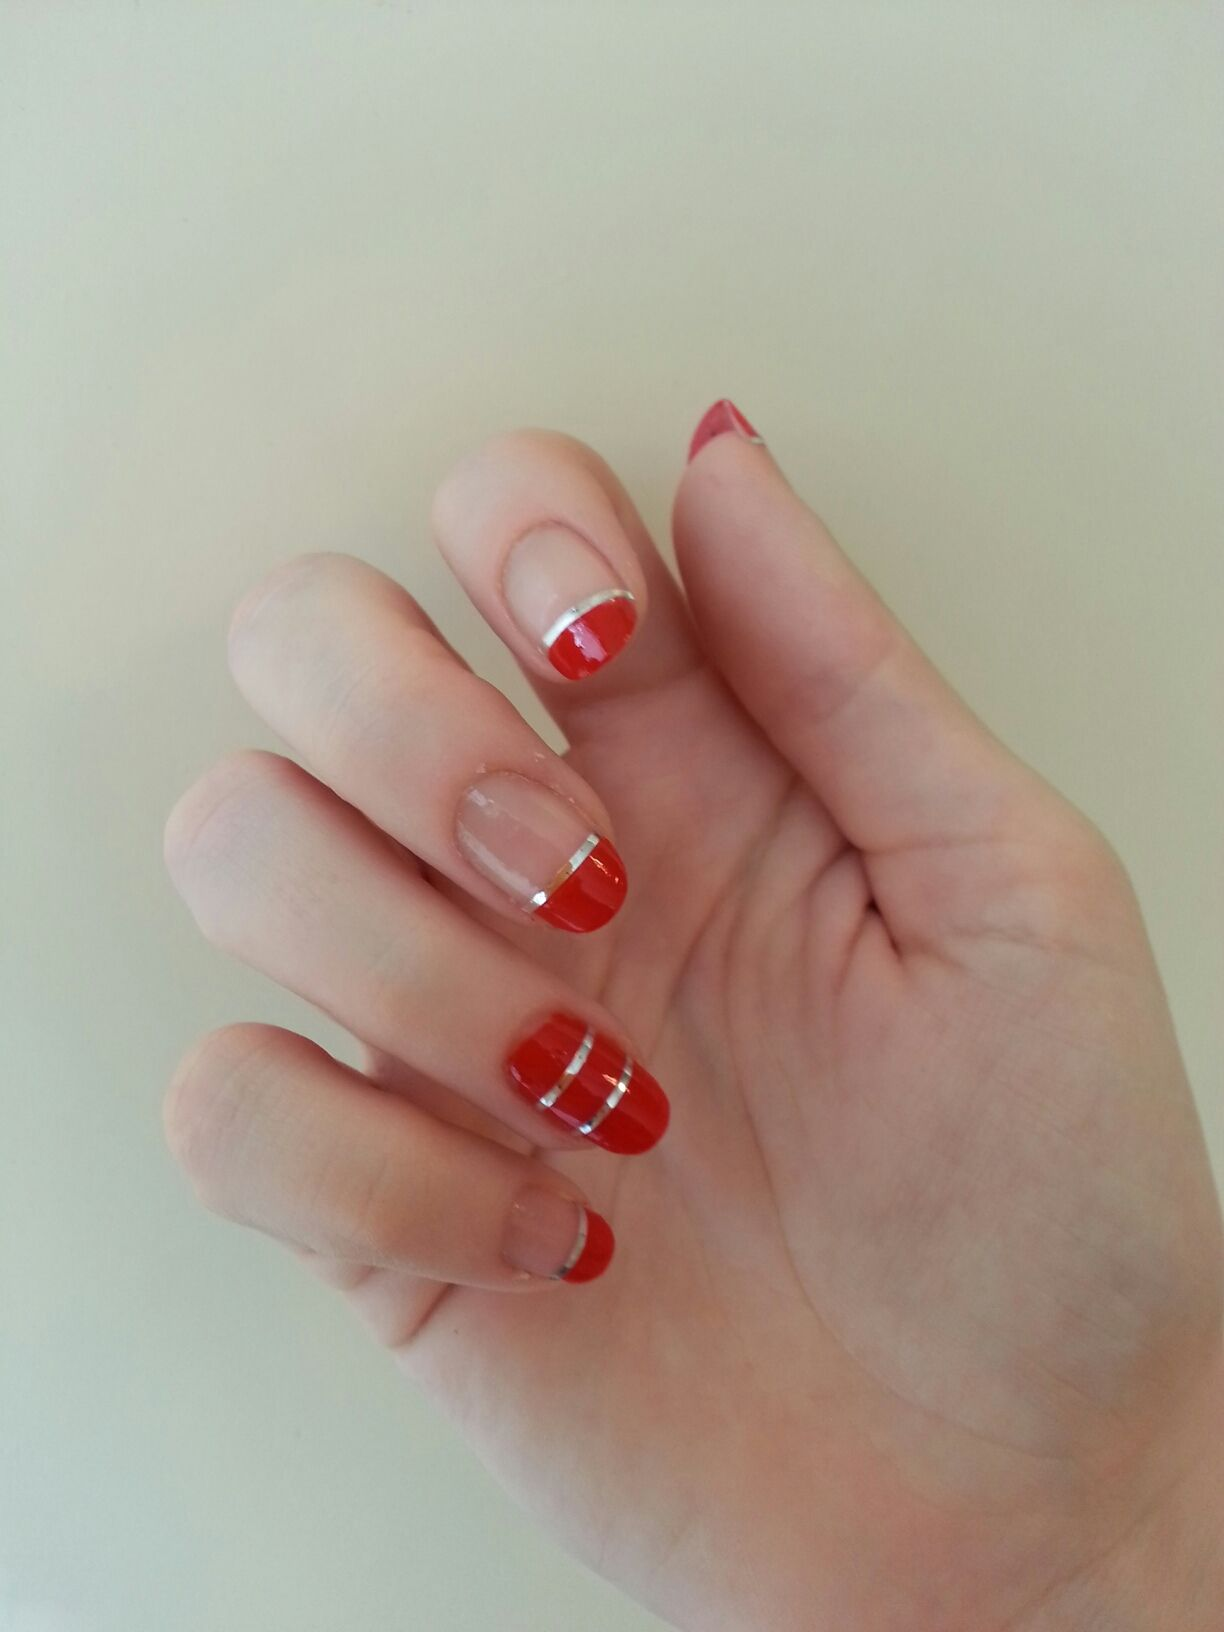 Related Image Nails Pinte